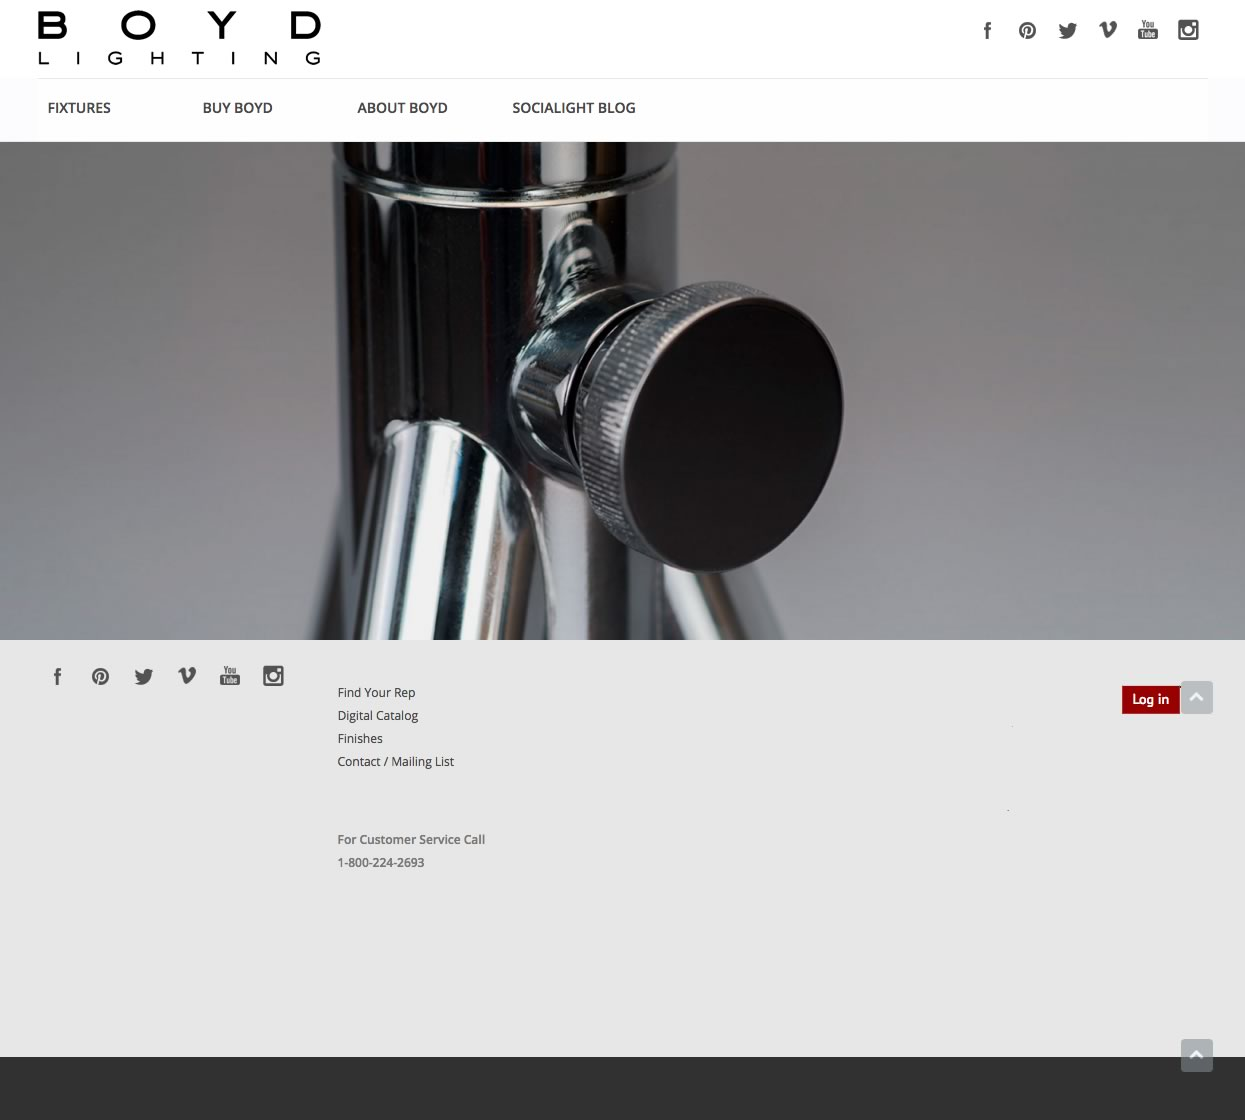 boydlighting.com